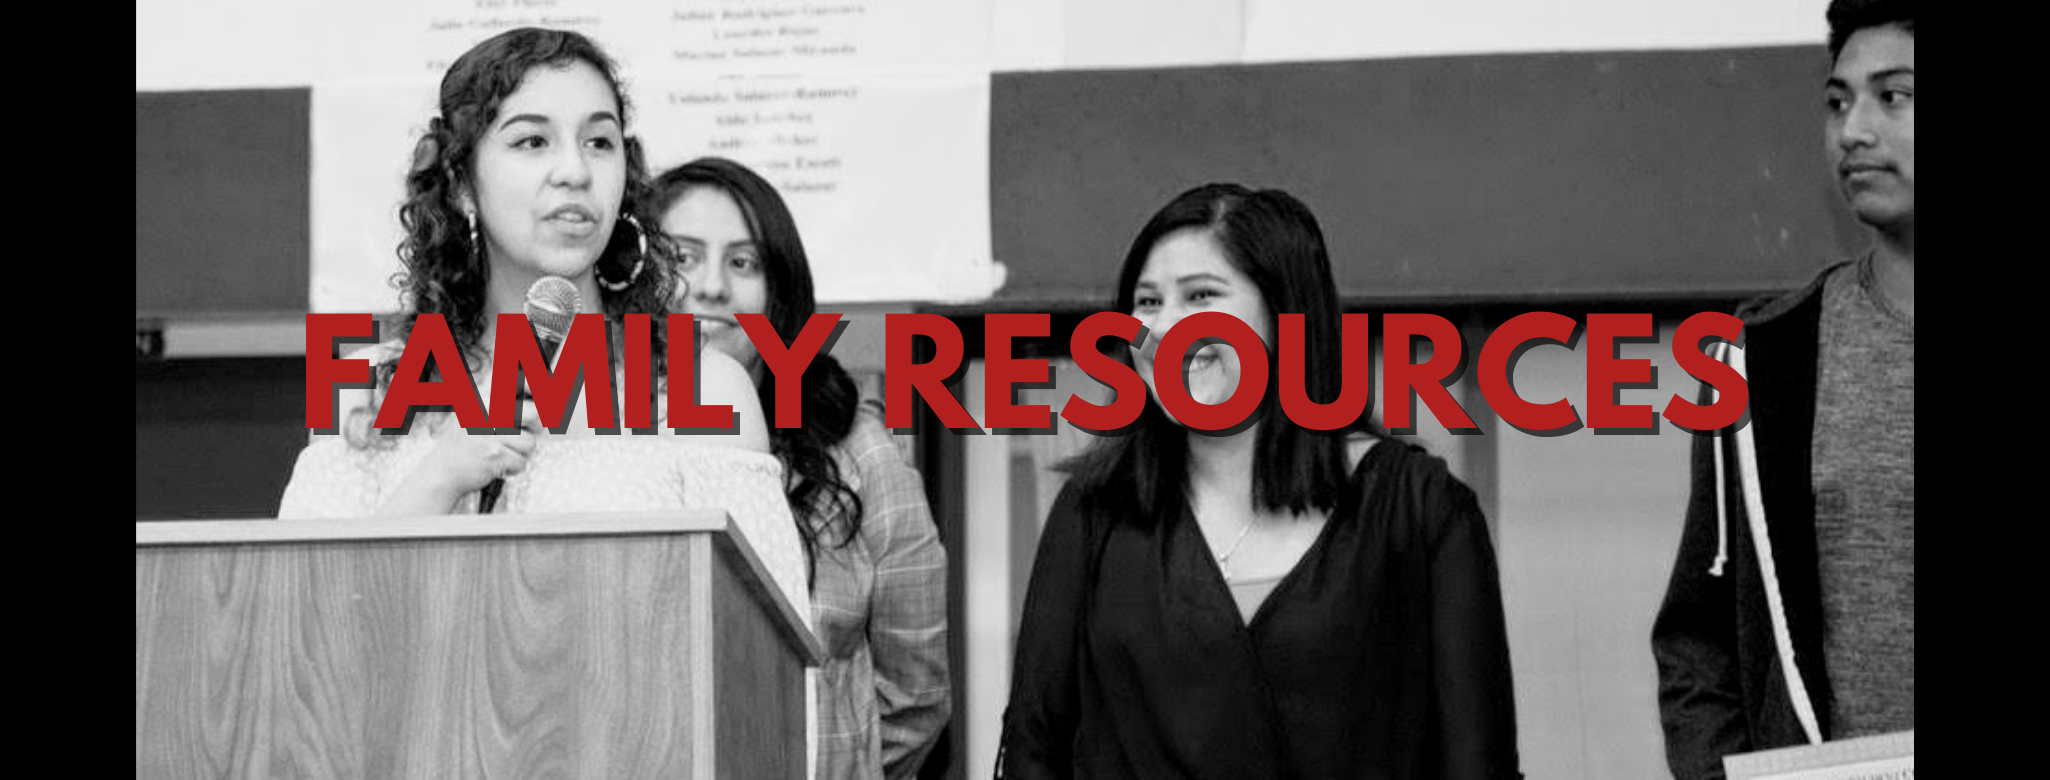 Family Resources - Header